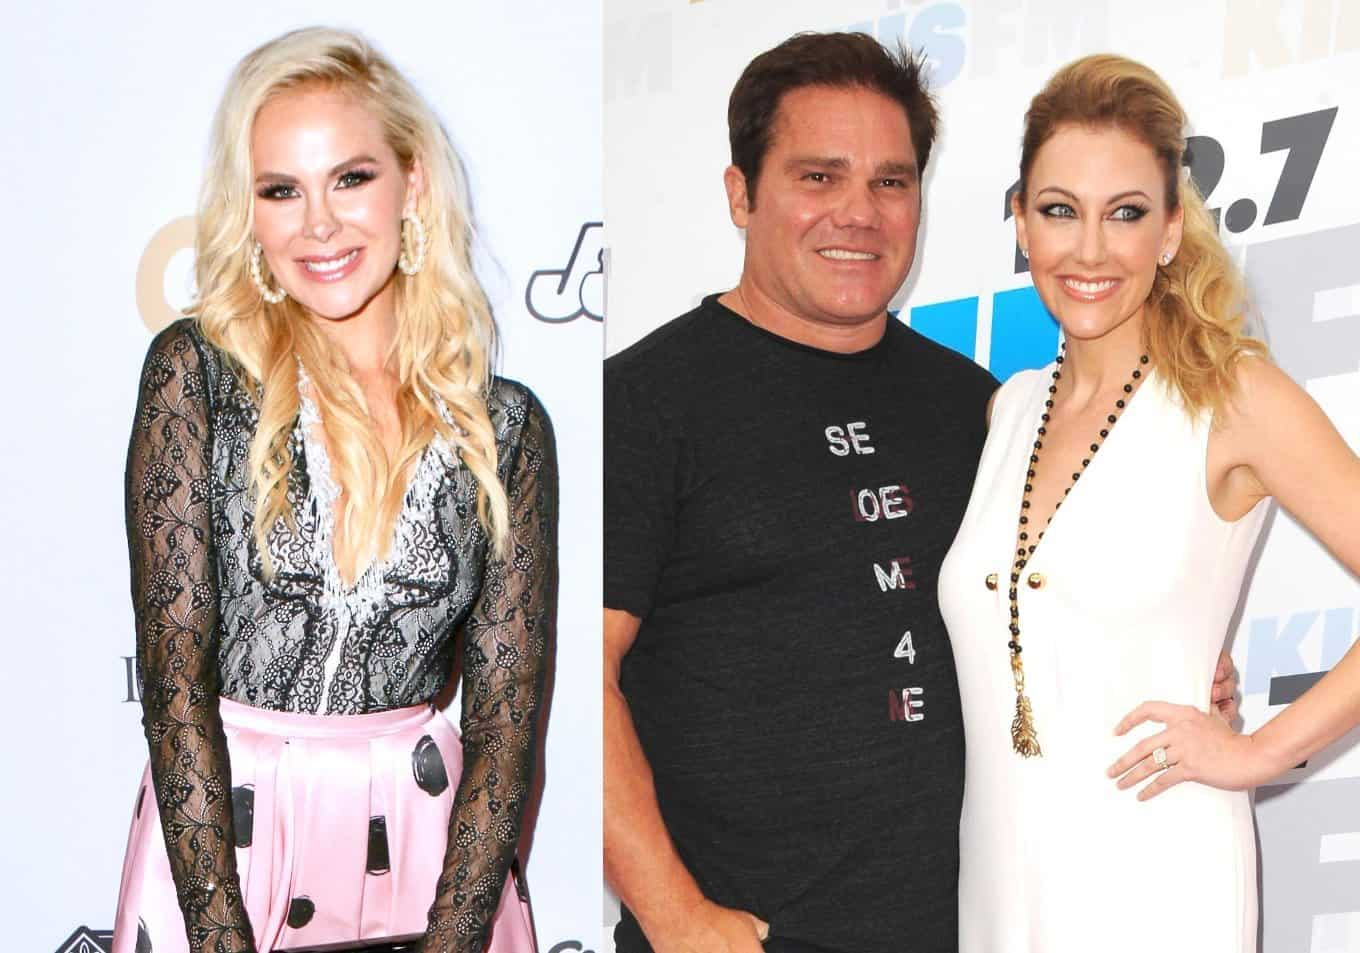 RHOD Star Kameron Westcott Responds After Travis Hollman Shades Her for Claiming She Helped Him and Stephanie Get Into Country Club, See Their Posts!